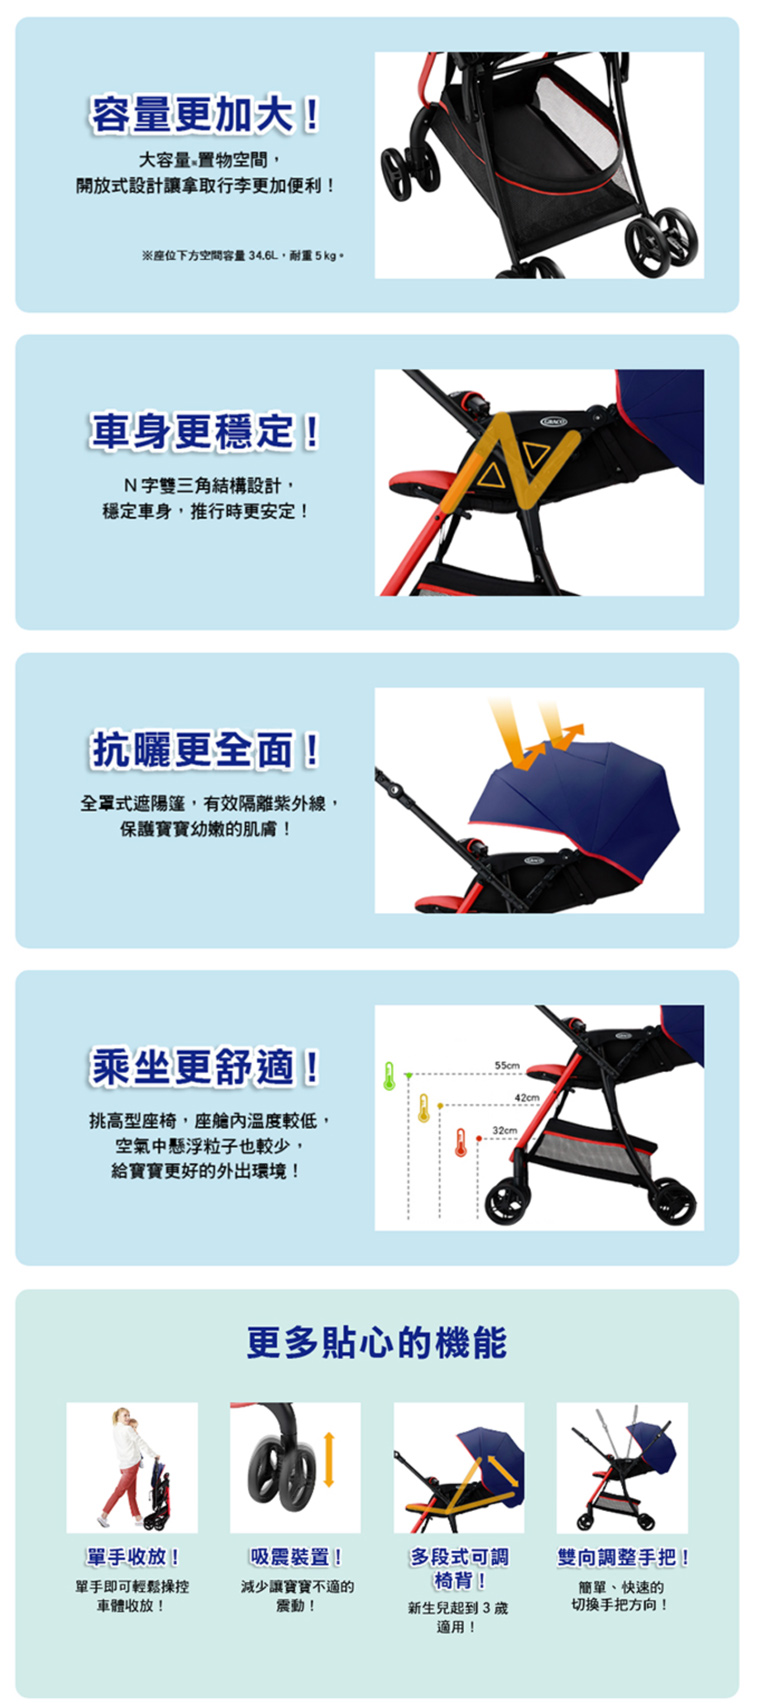 graco-citi-star-info02